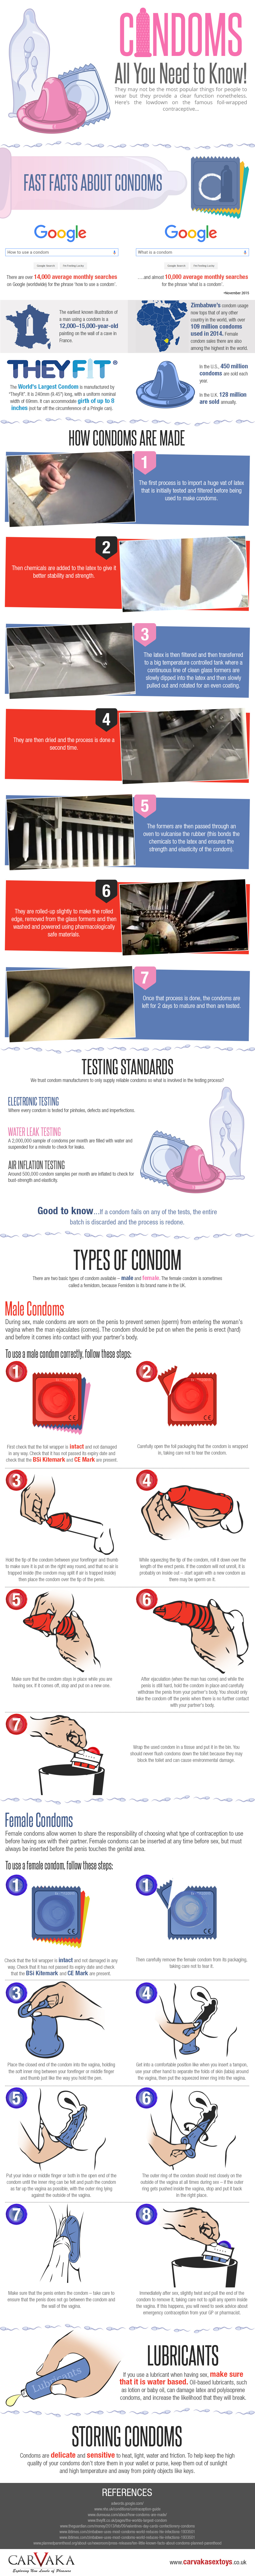 Condoms-all-you-need-to-know (1)